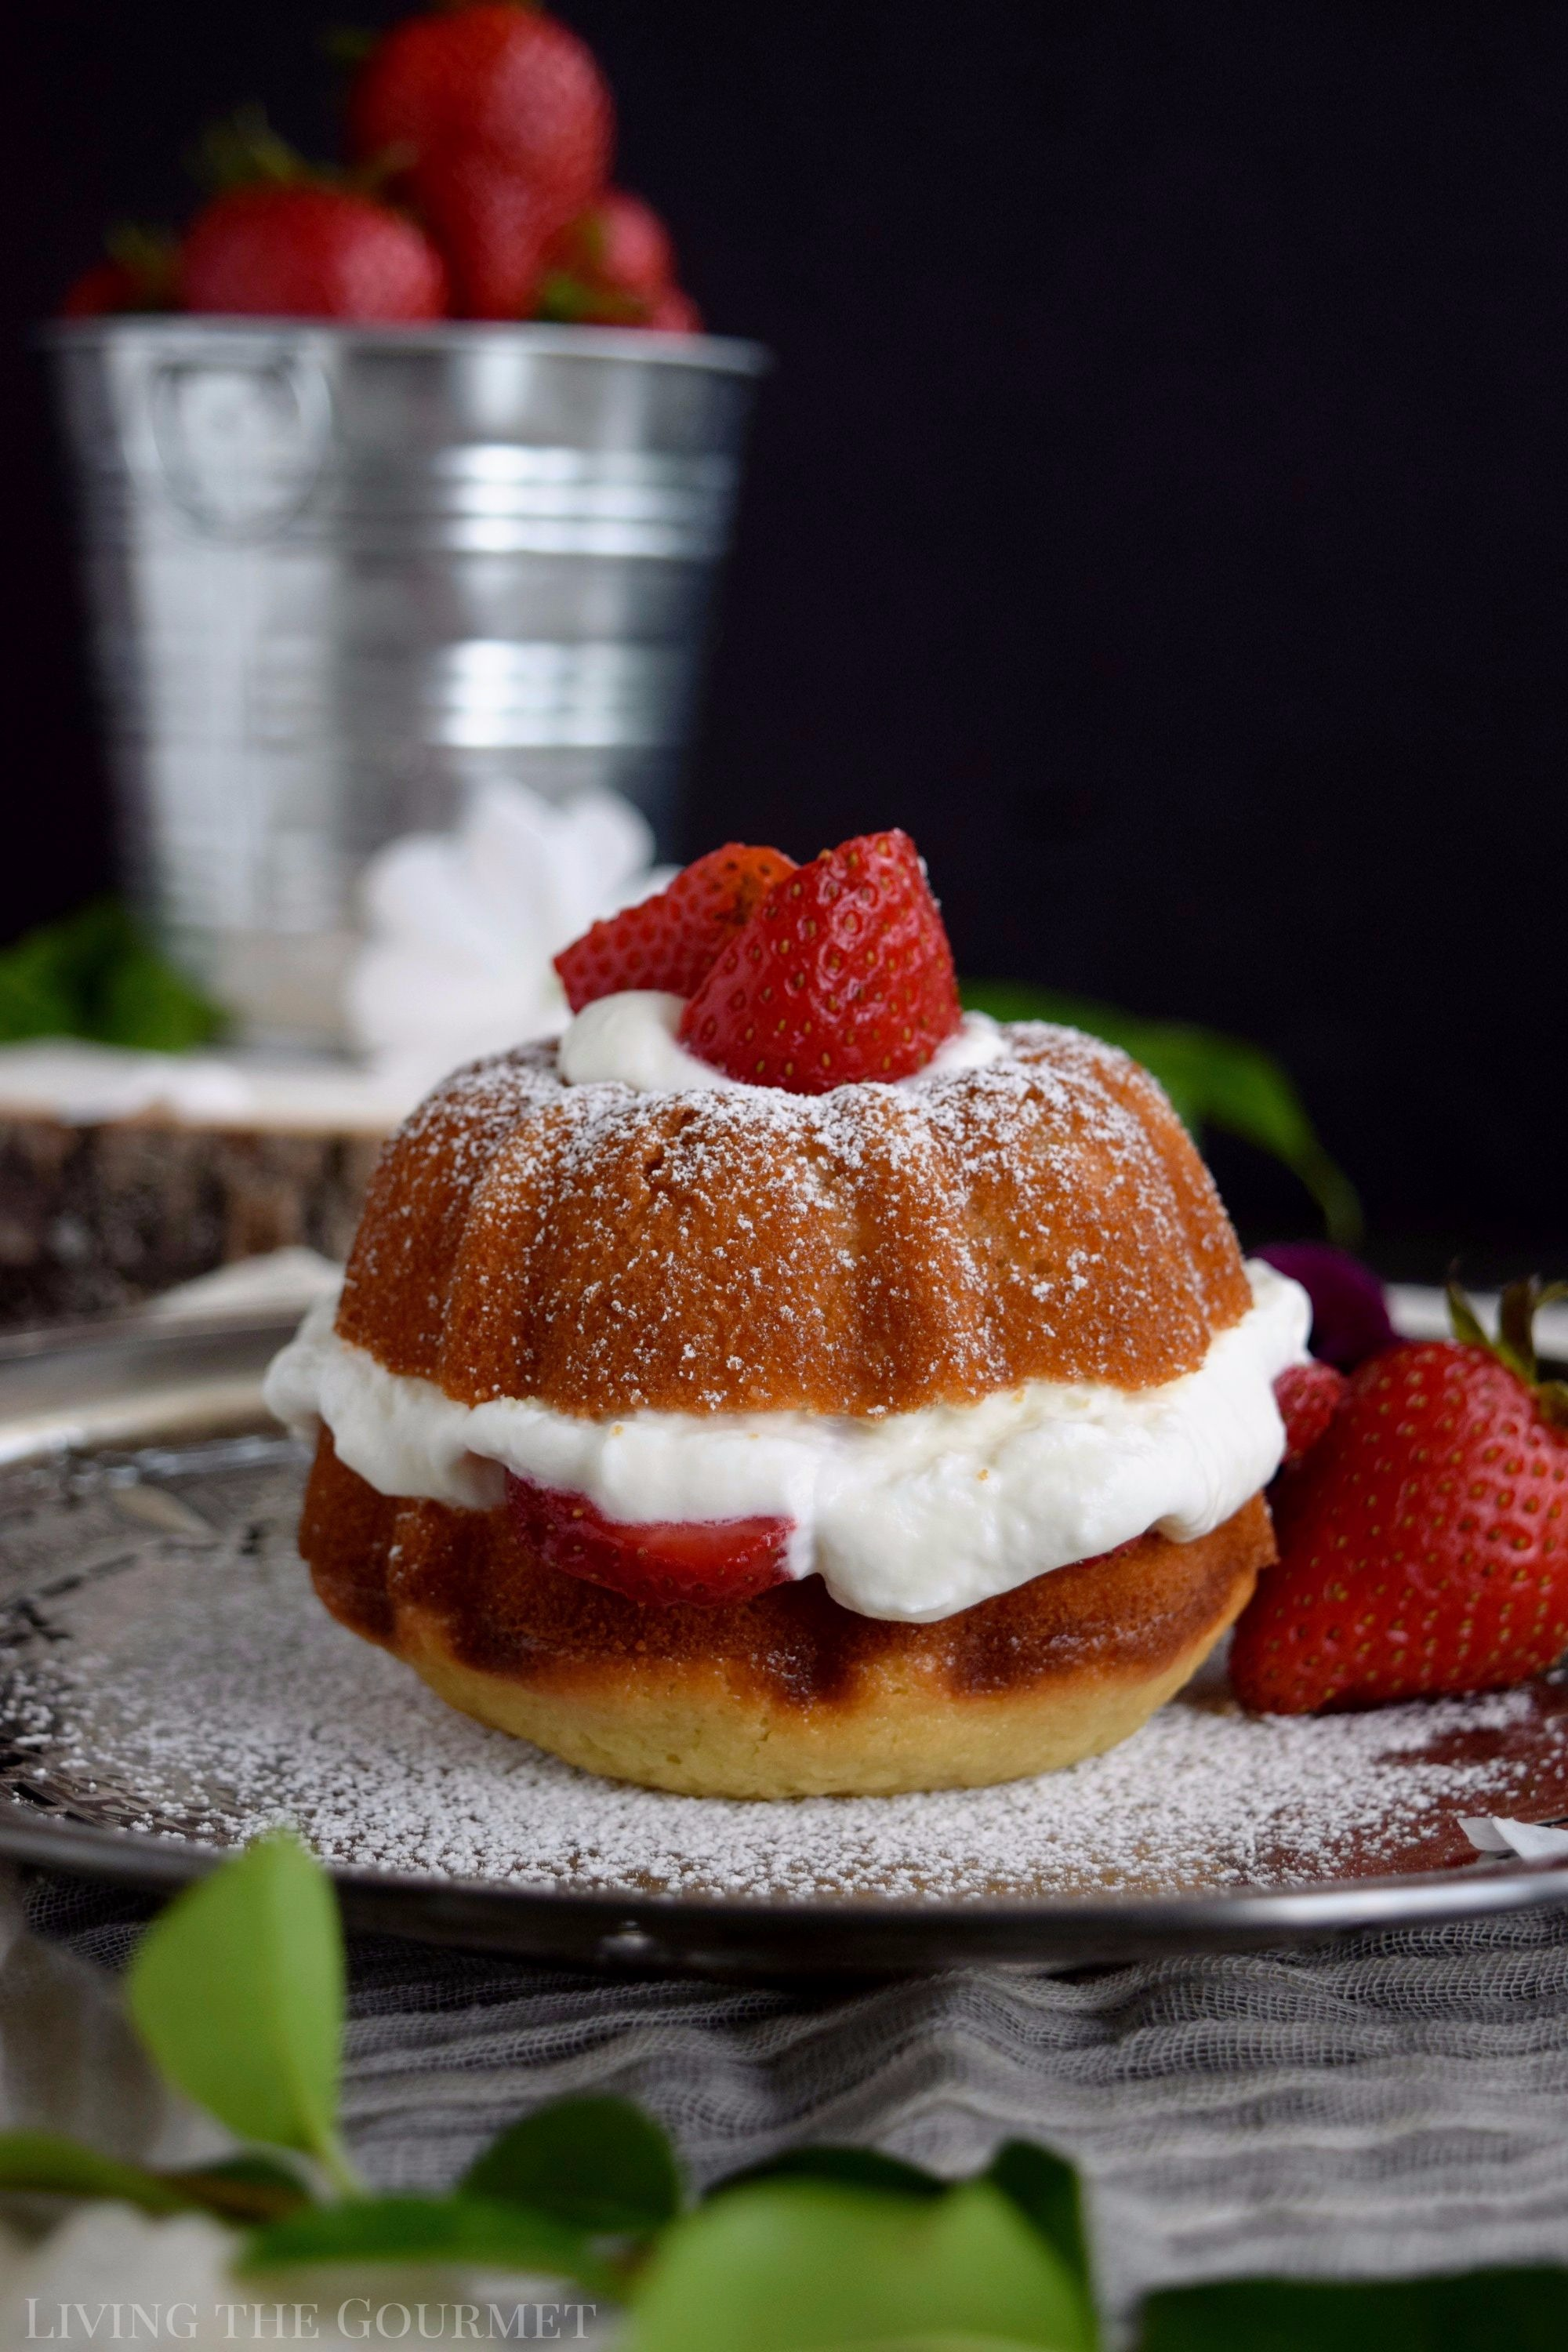 Living the Gourmet: Revamp your favorite strawberry dessert with these Strawberries and Cream Naked Bundt Cakes. #BundtBakers